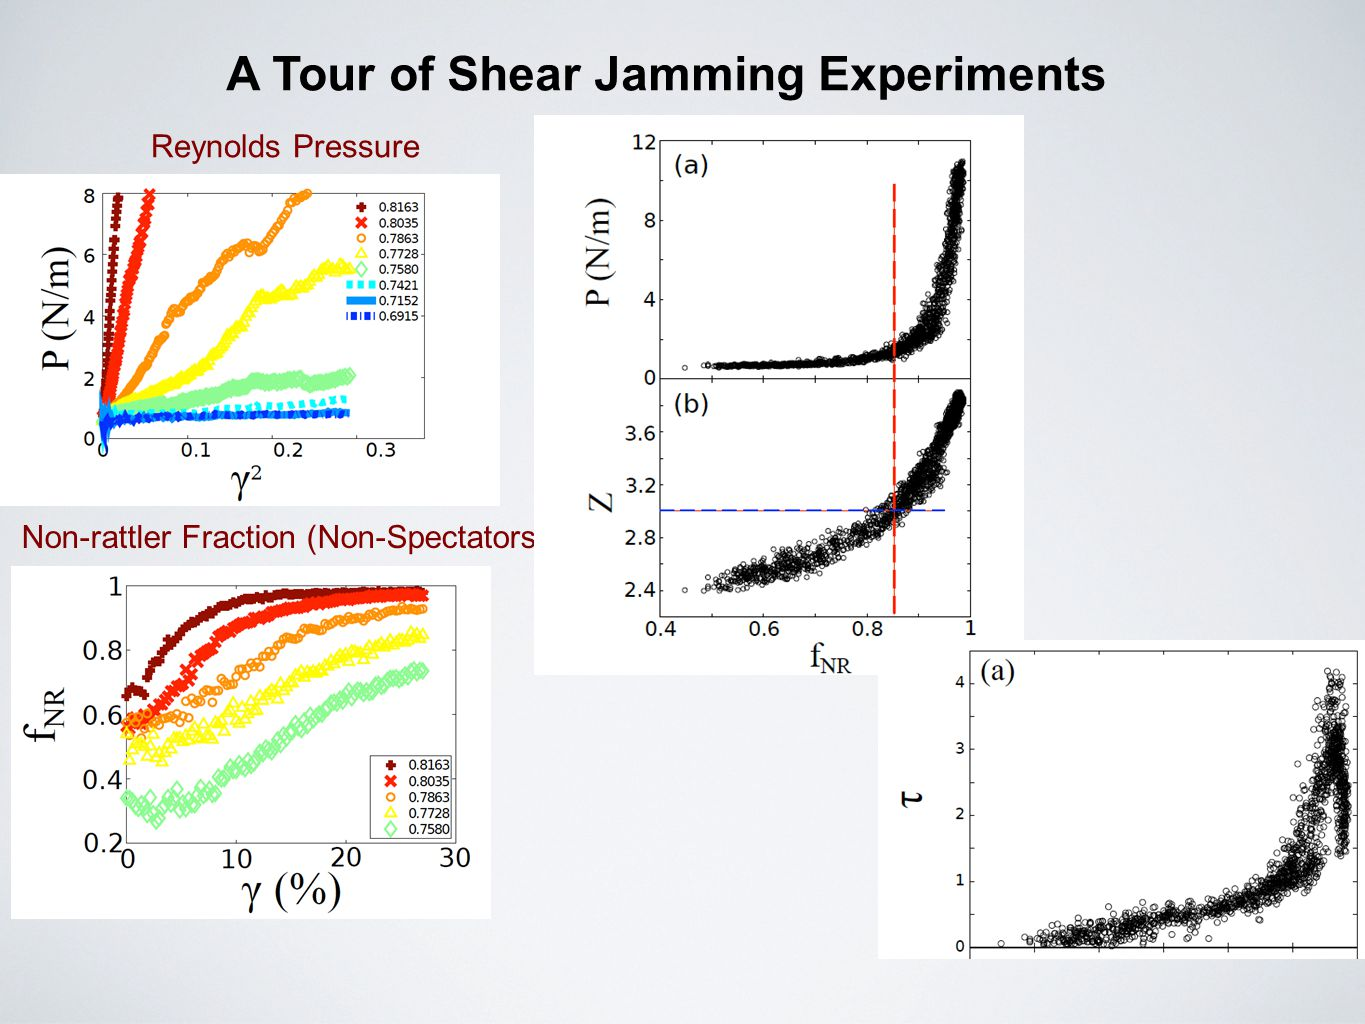 A Tour of Shear Jamming Experiments